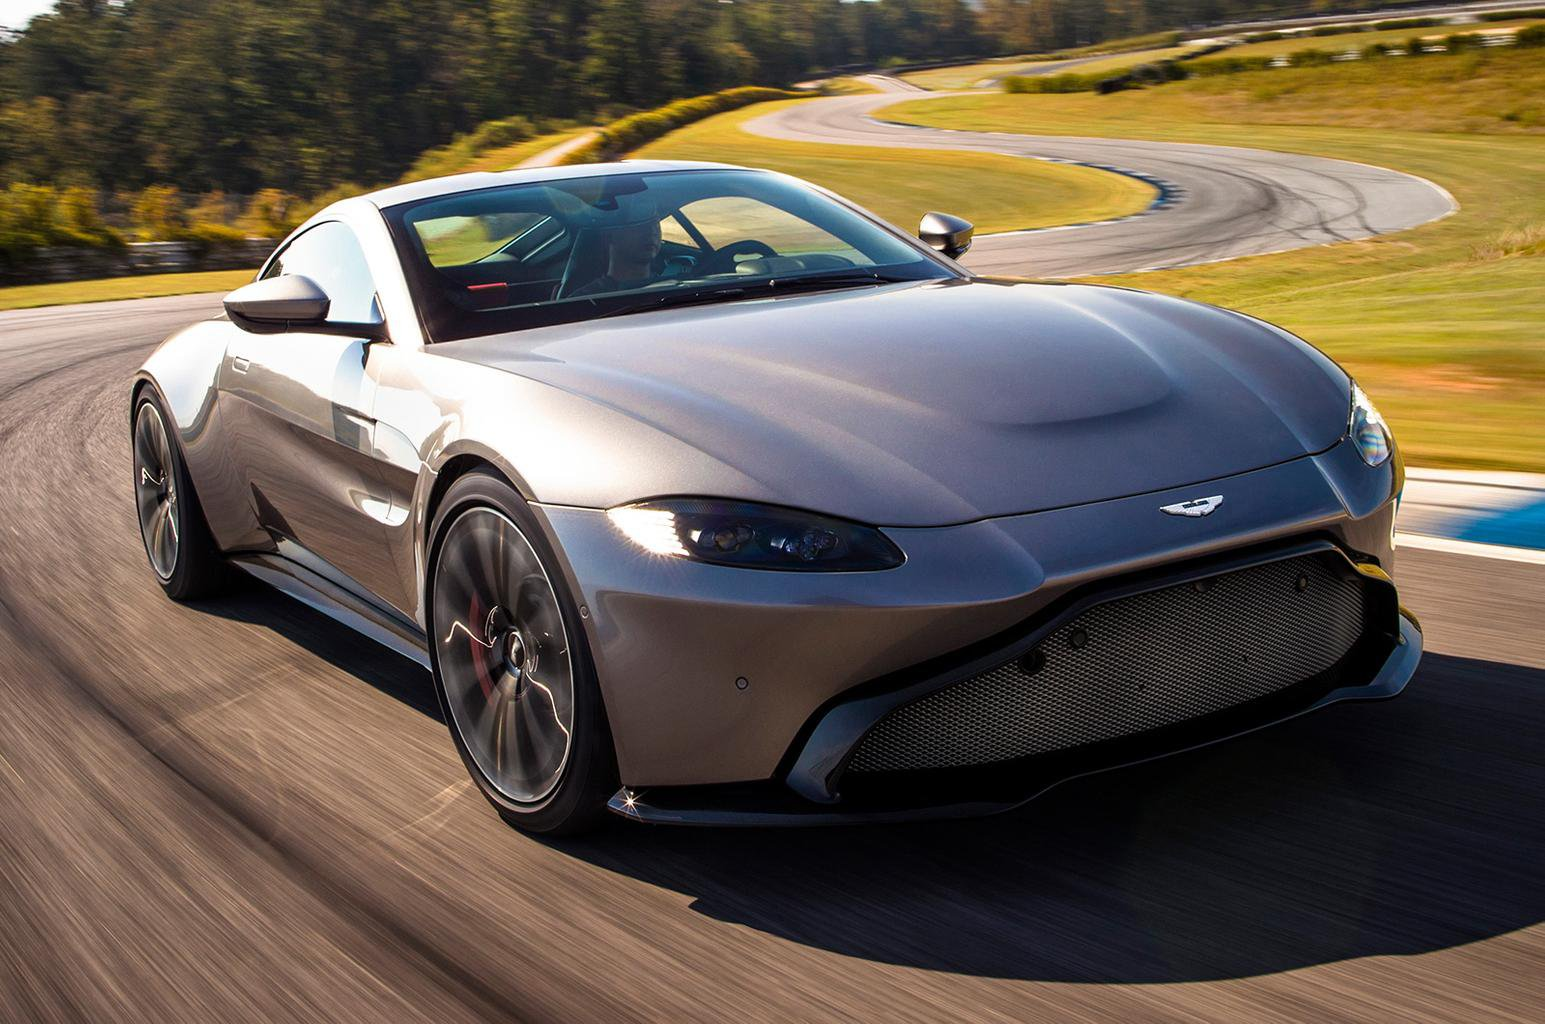 2018 Aston Martin Vantage revealed – price, specs and release date